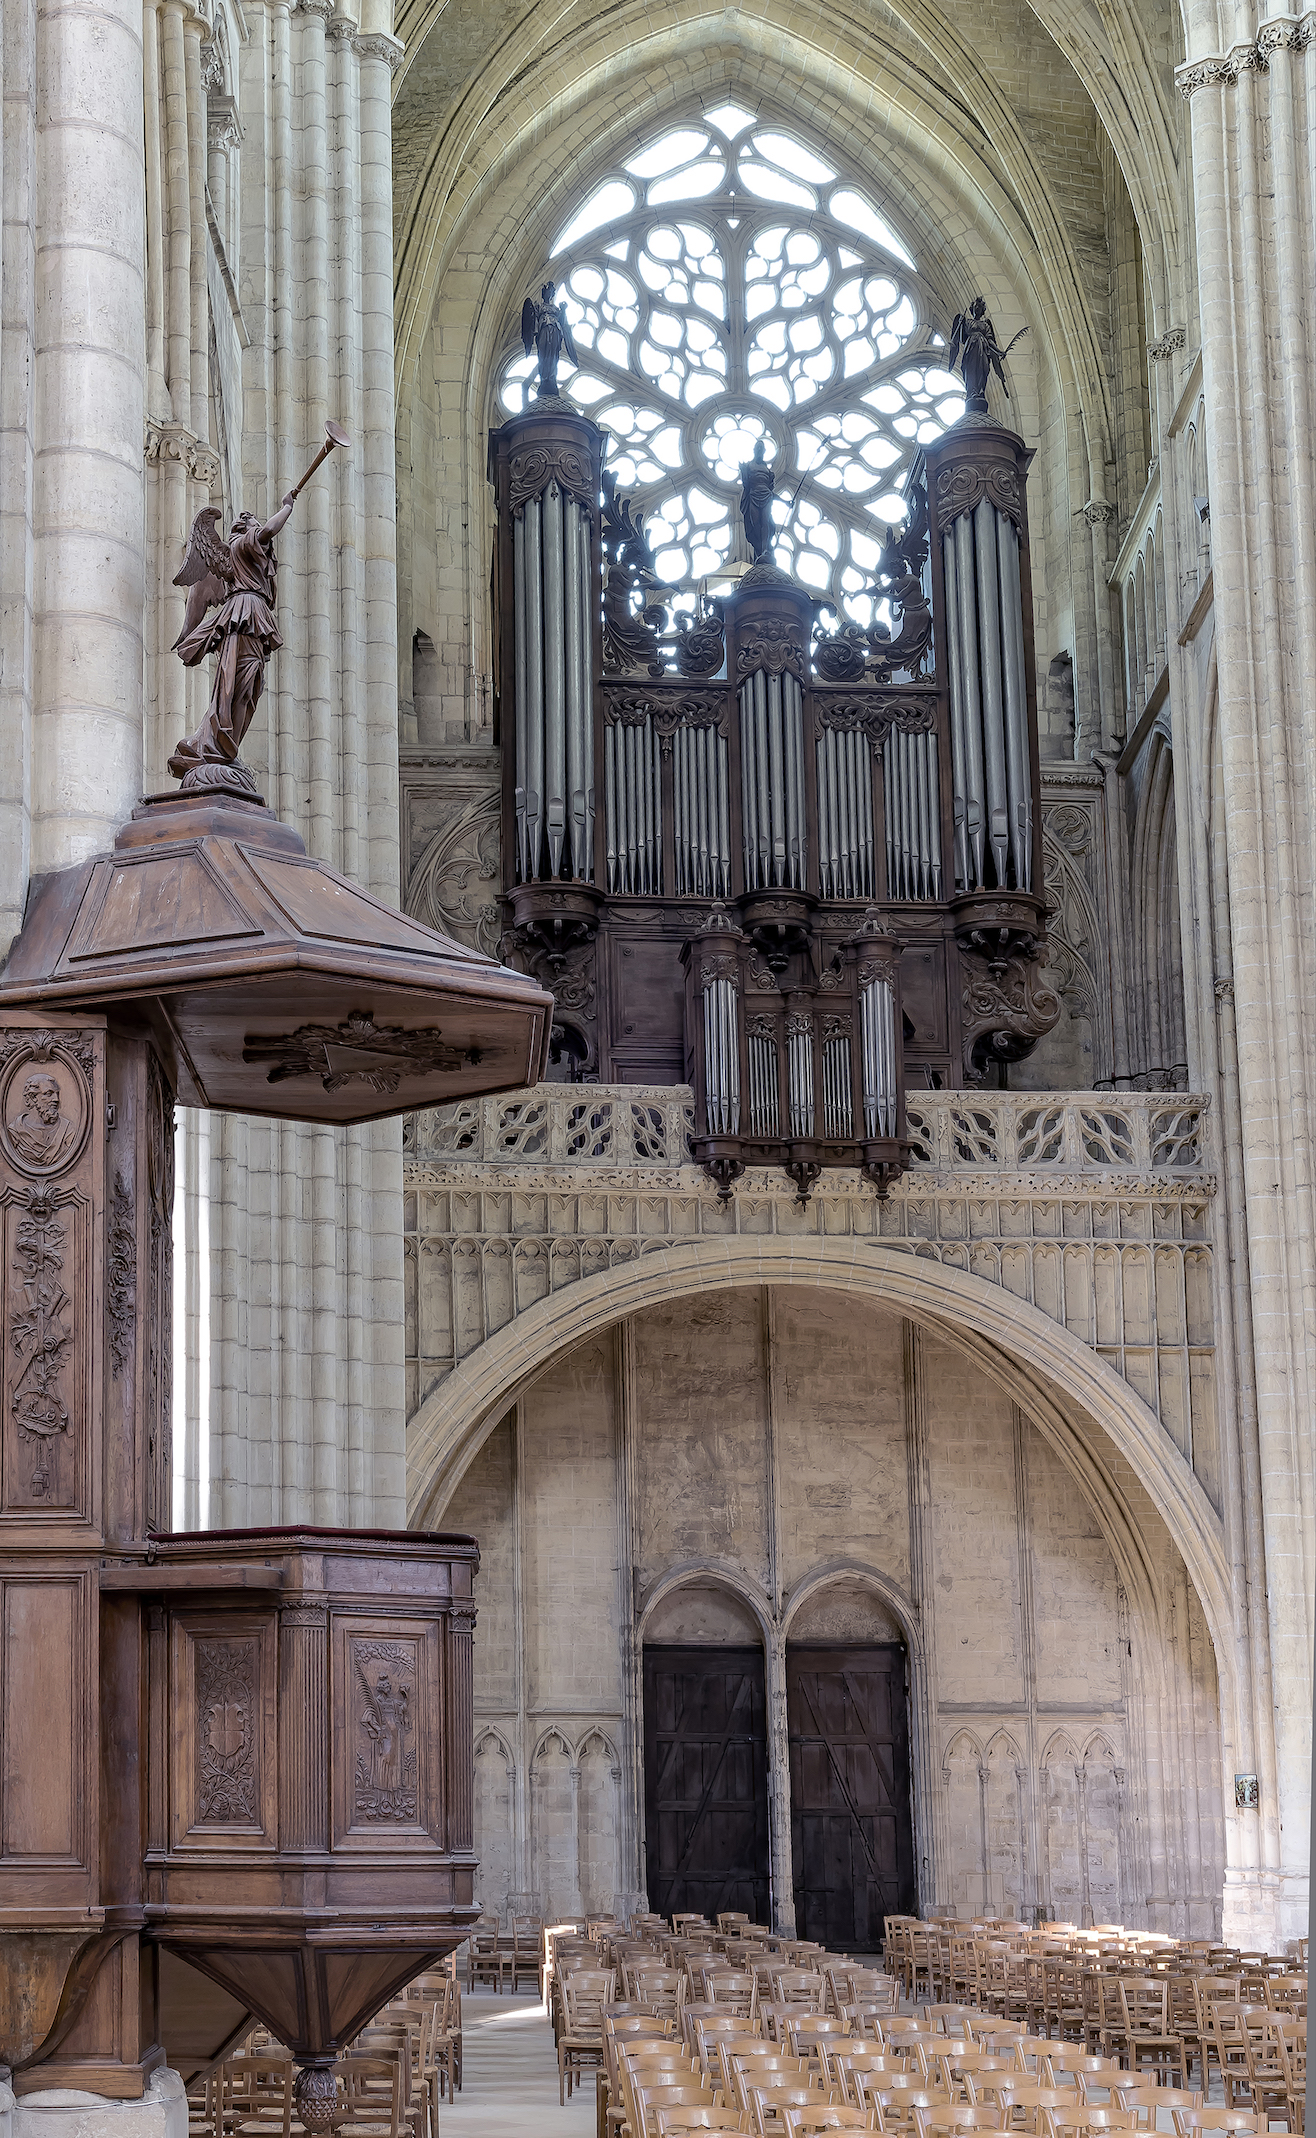 Grand orgue de la cathédrale